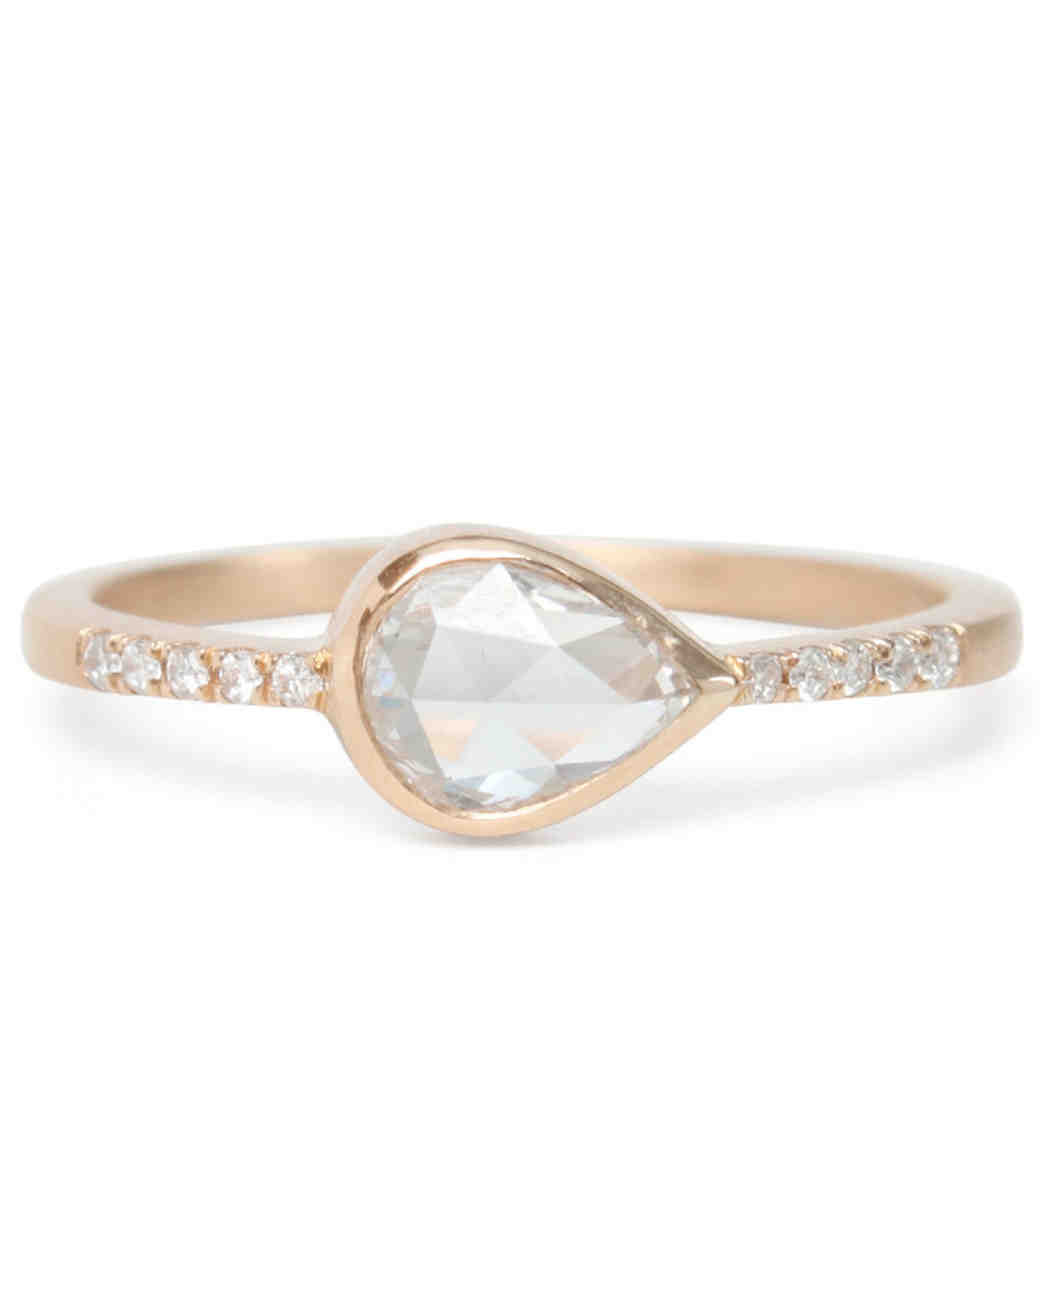 Gillian Conroy Pear-Cut Engagement Ring